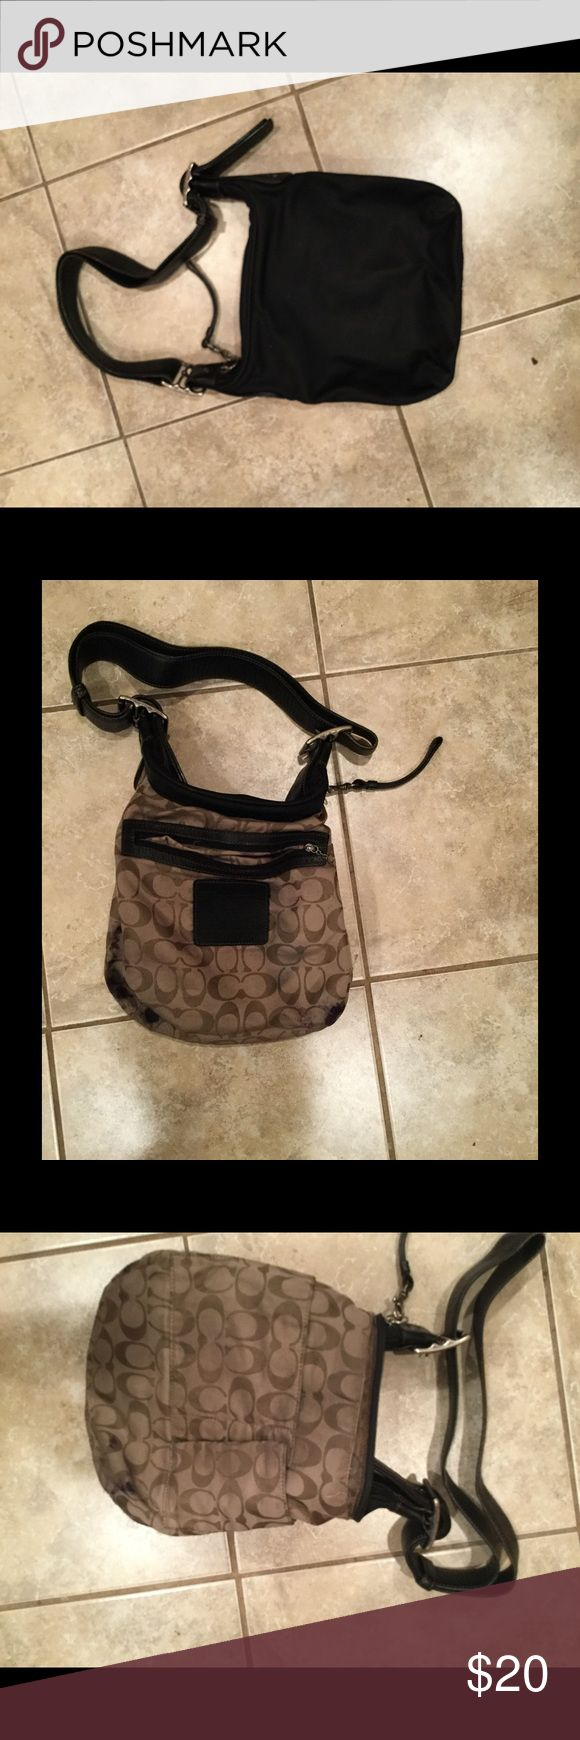 Coach bag In good condition.  The inside has some ink stains as shown. Coach Bags